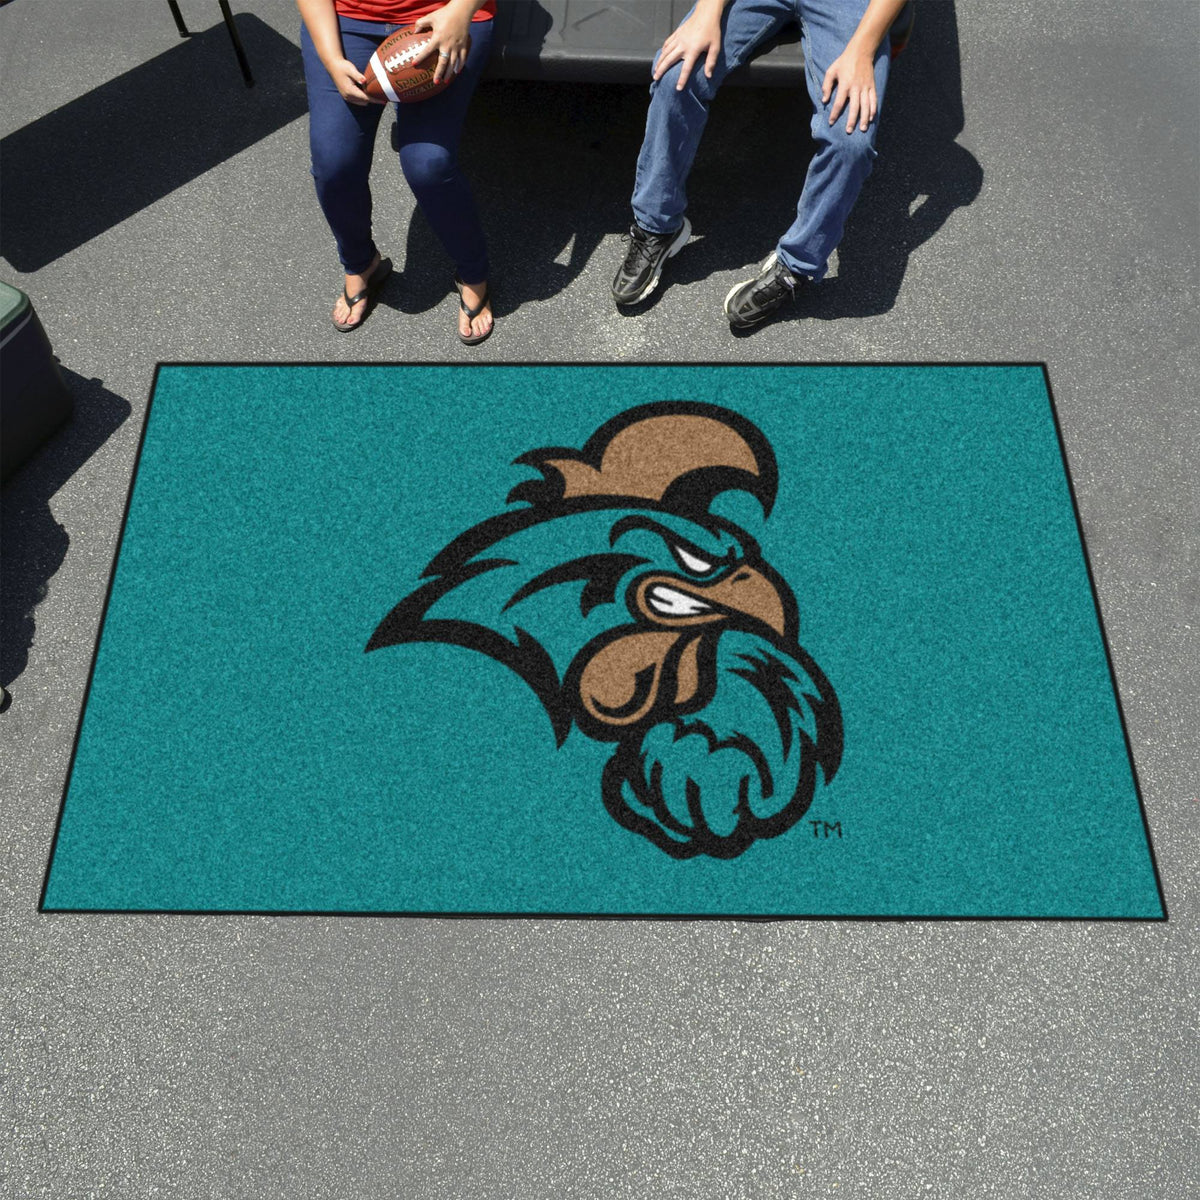 Collegiate - Ulti-Mat: A - L Collegiate Mats, Rectangular Mats, Ulti-Mat, Collegiate, Home Fan Mats Coastal Carolina